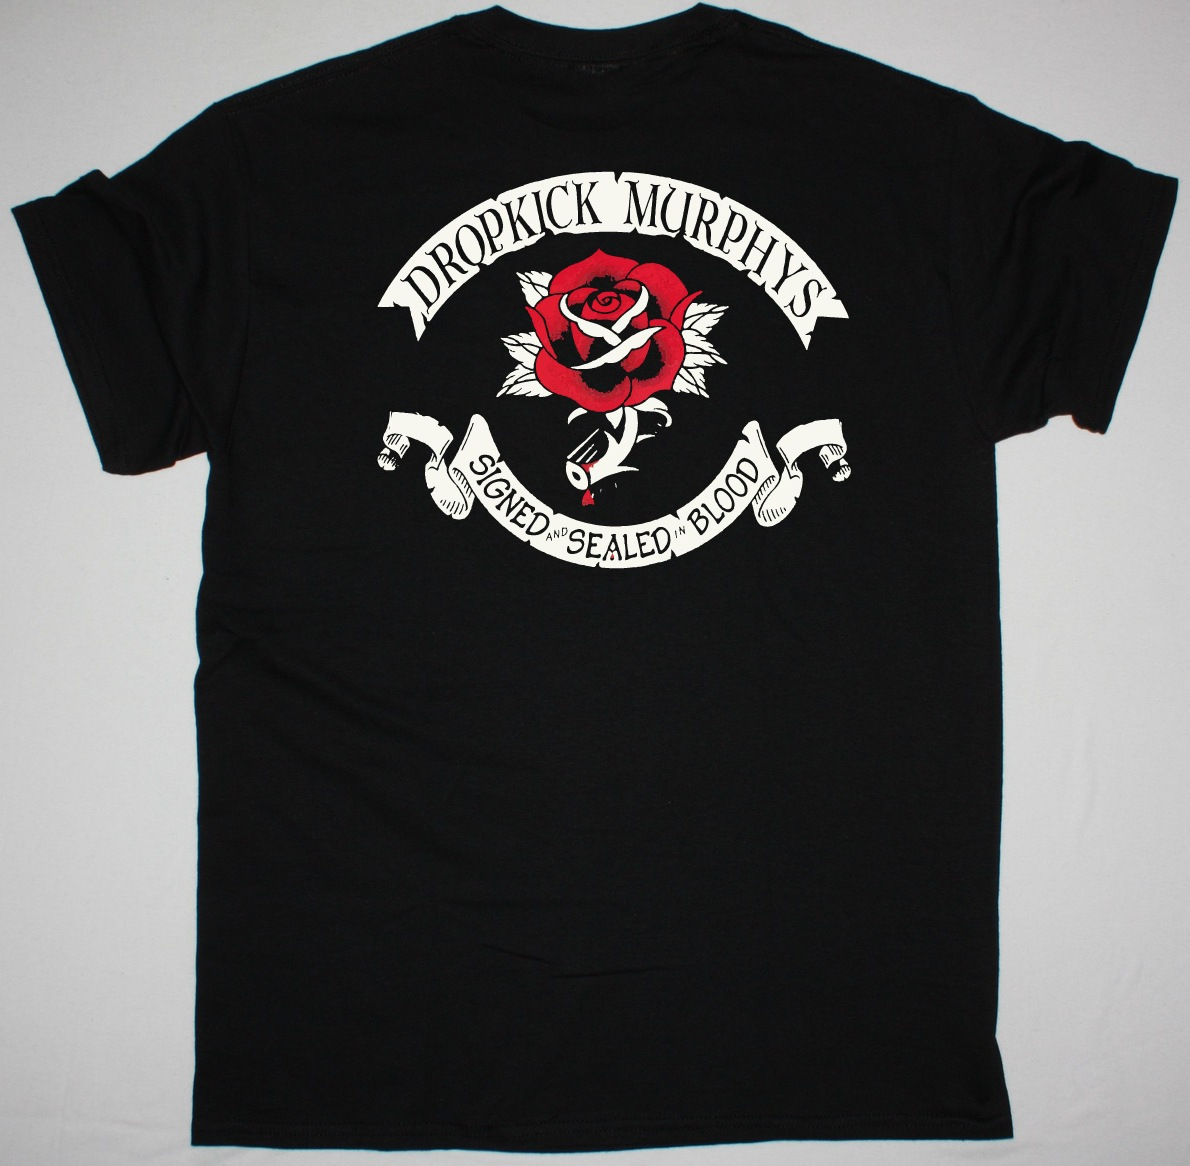 DROPKICK MURPHYS SIGNED AND SEALED IN BLOOD NEW BLACK T SHIRT